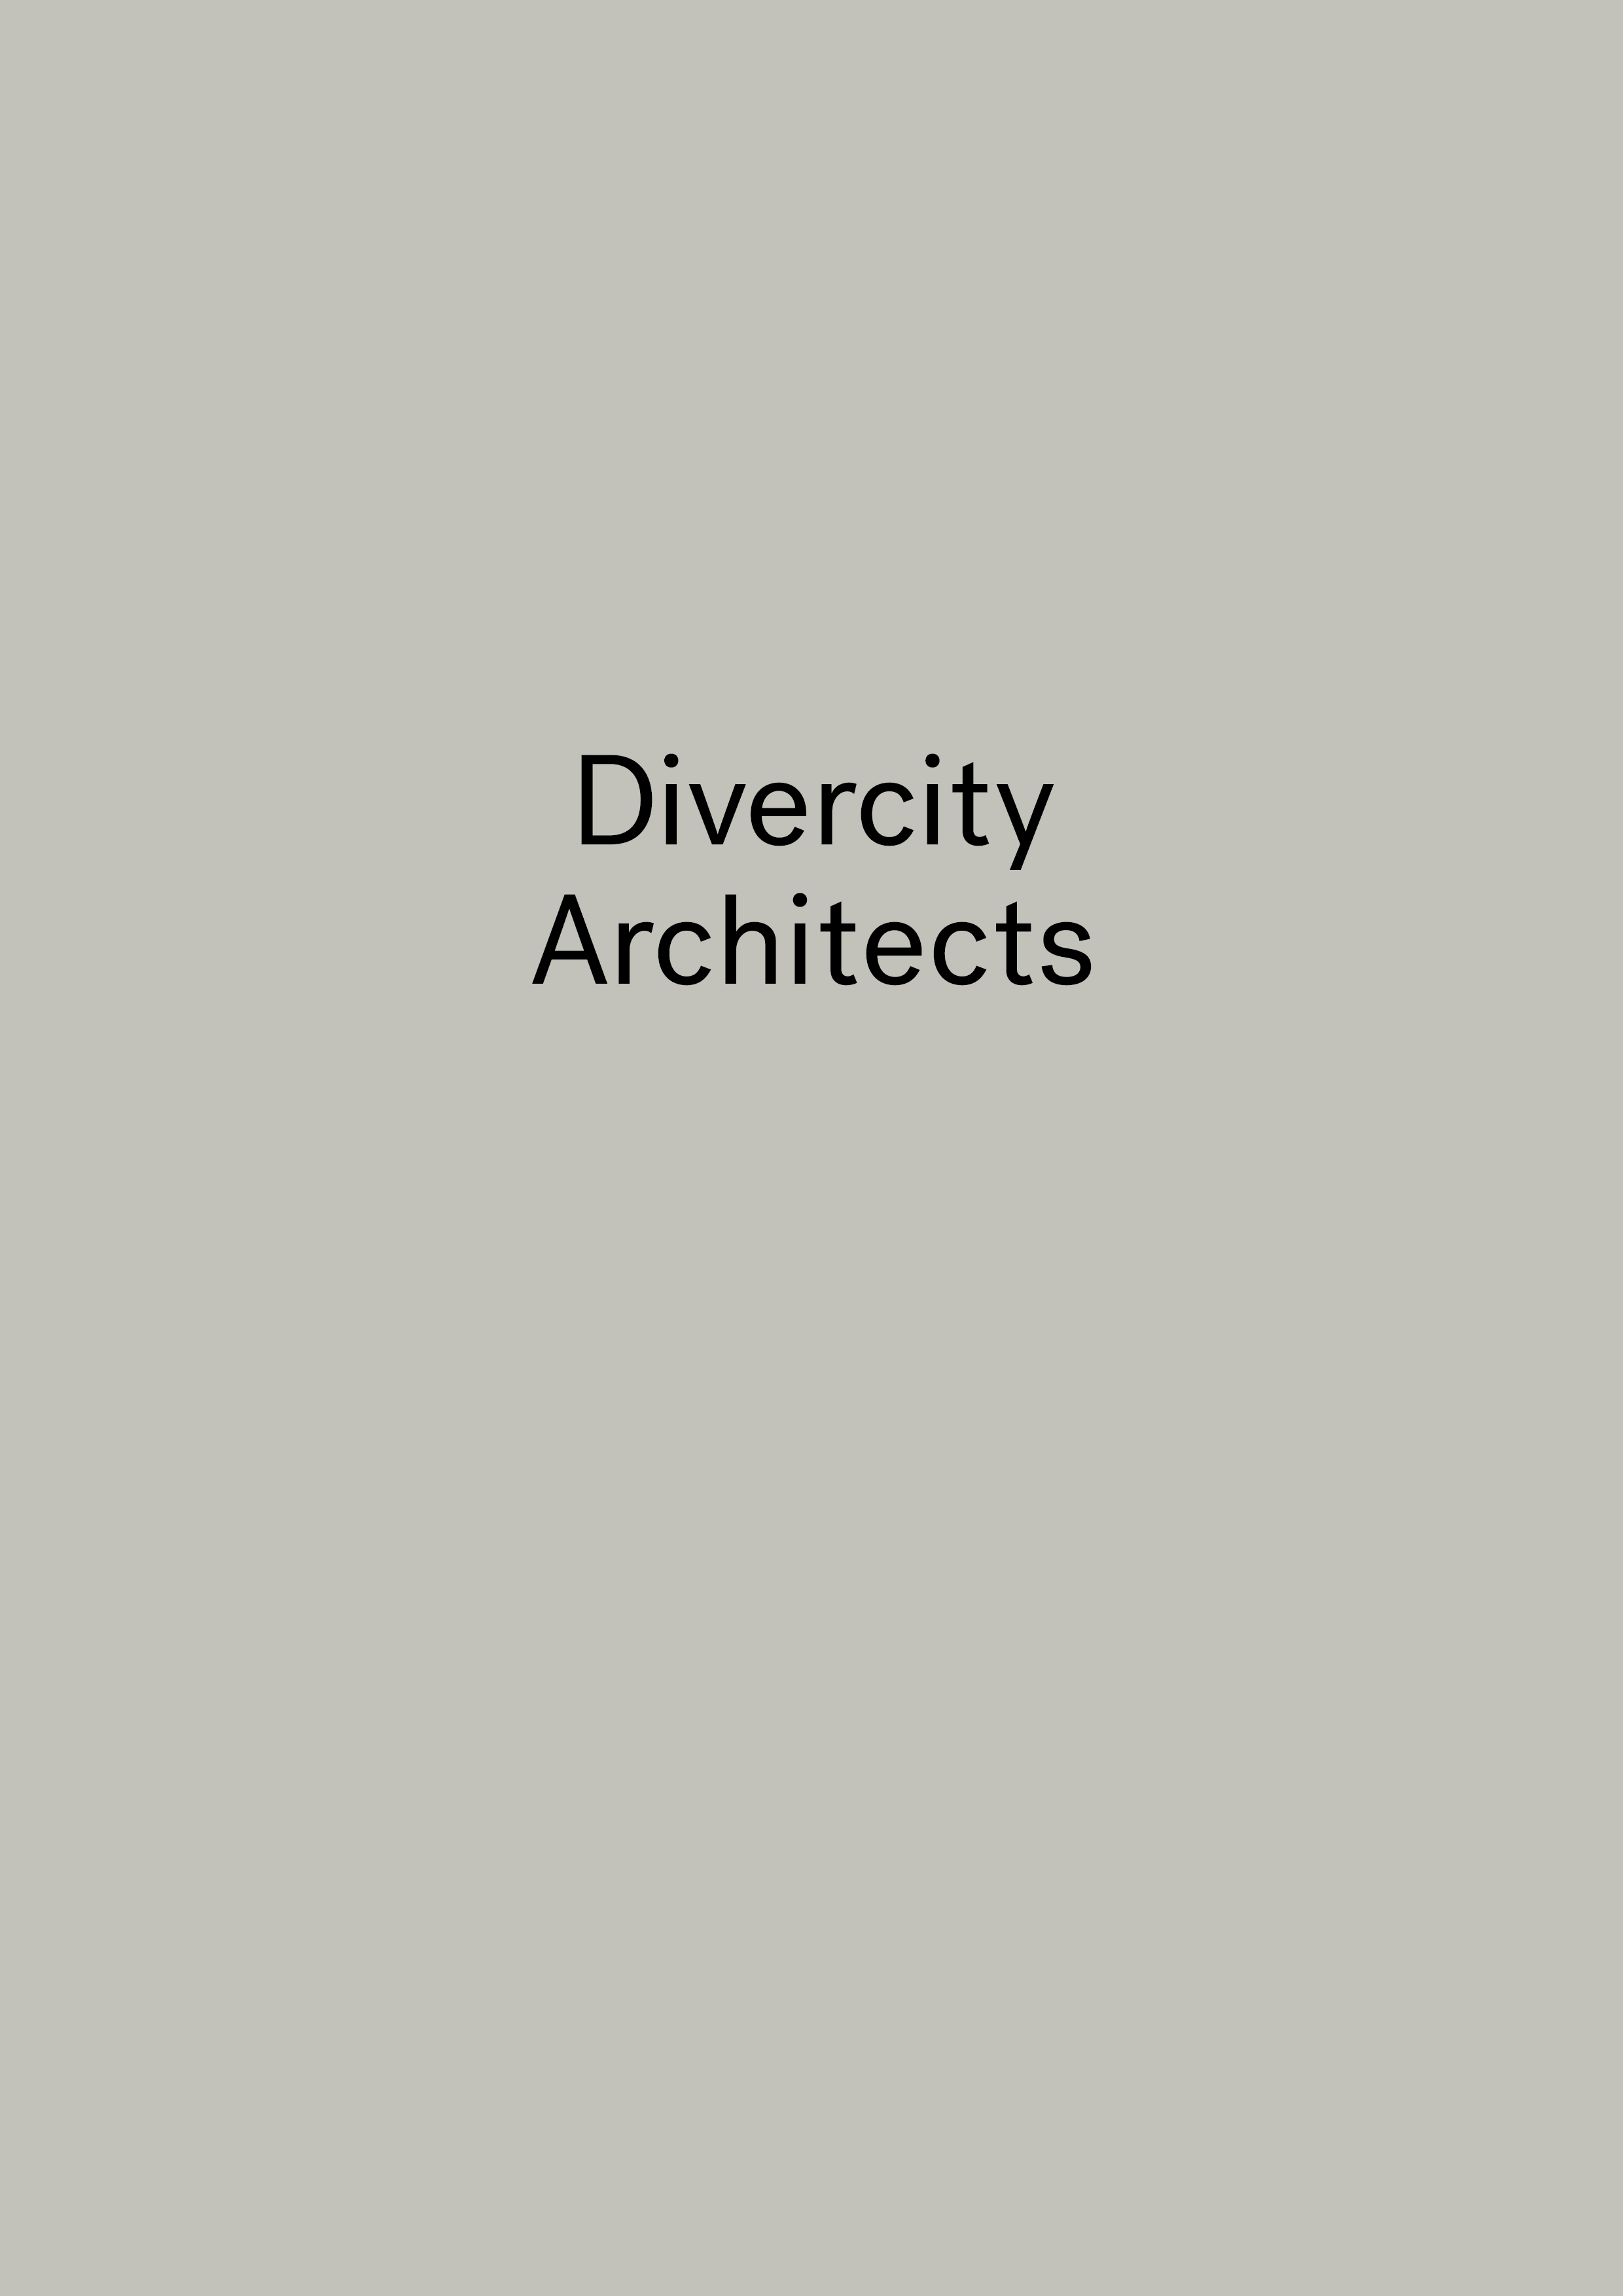 01_DivercityArchitects_cover